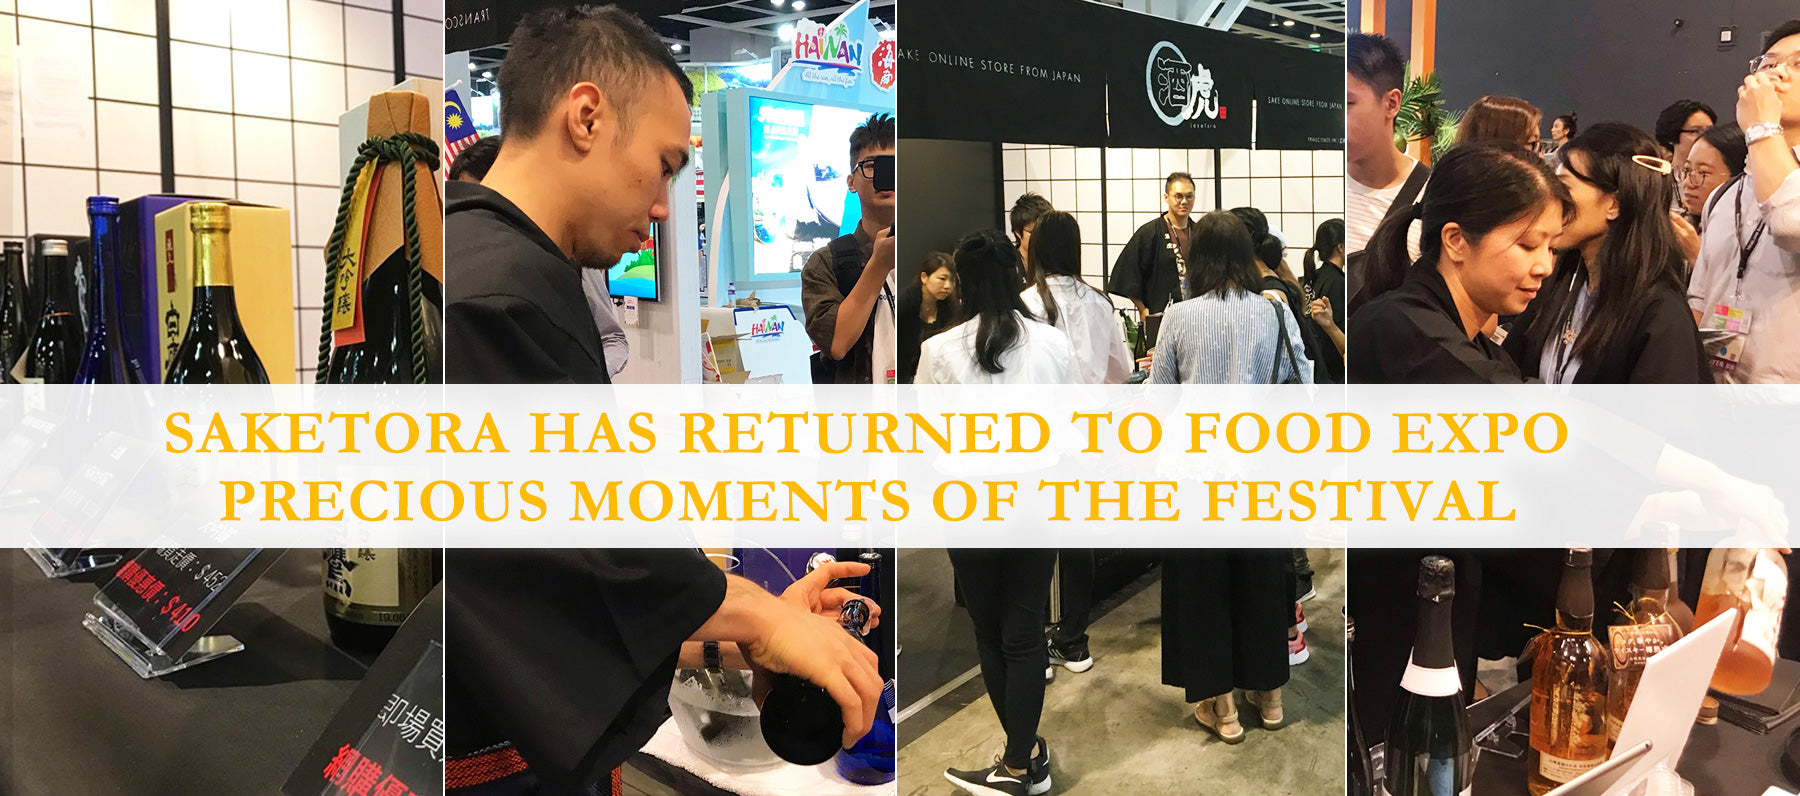 Saketora - SAKETORA HAS RETURENED TO FOOD EXPO PRECIOUS MOMENTS OF THE FESTIVAL